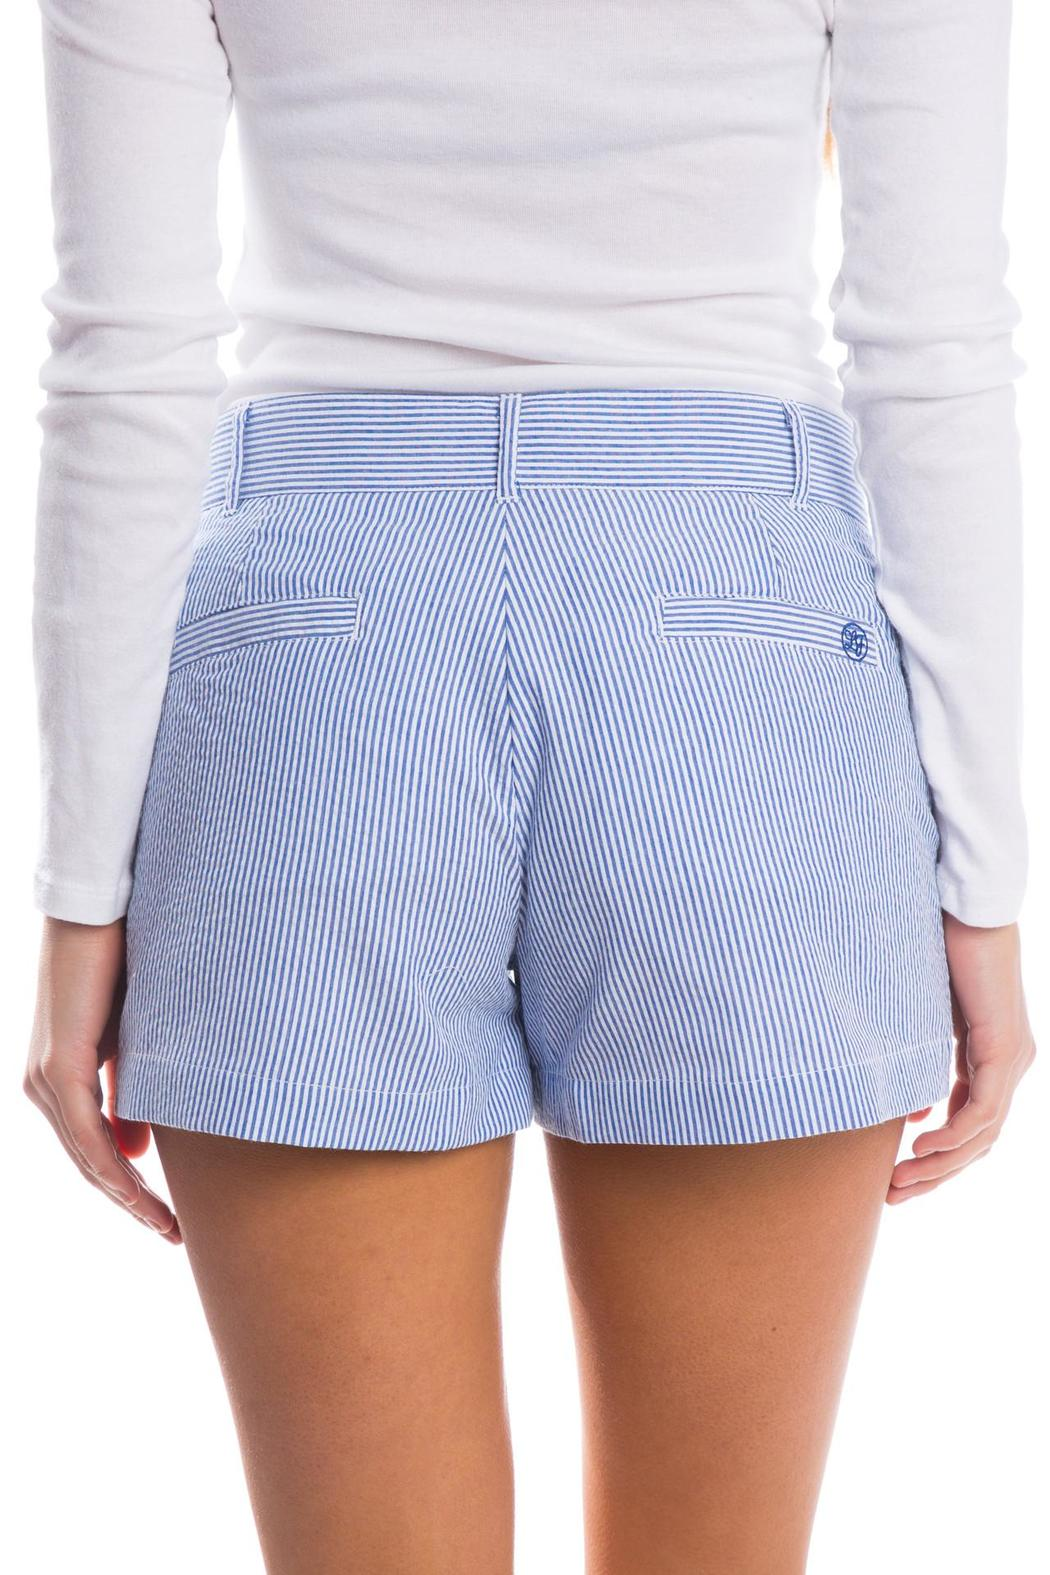 Lauren James Seersucker Poplin Shorts - Front Full Image